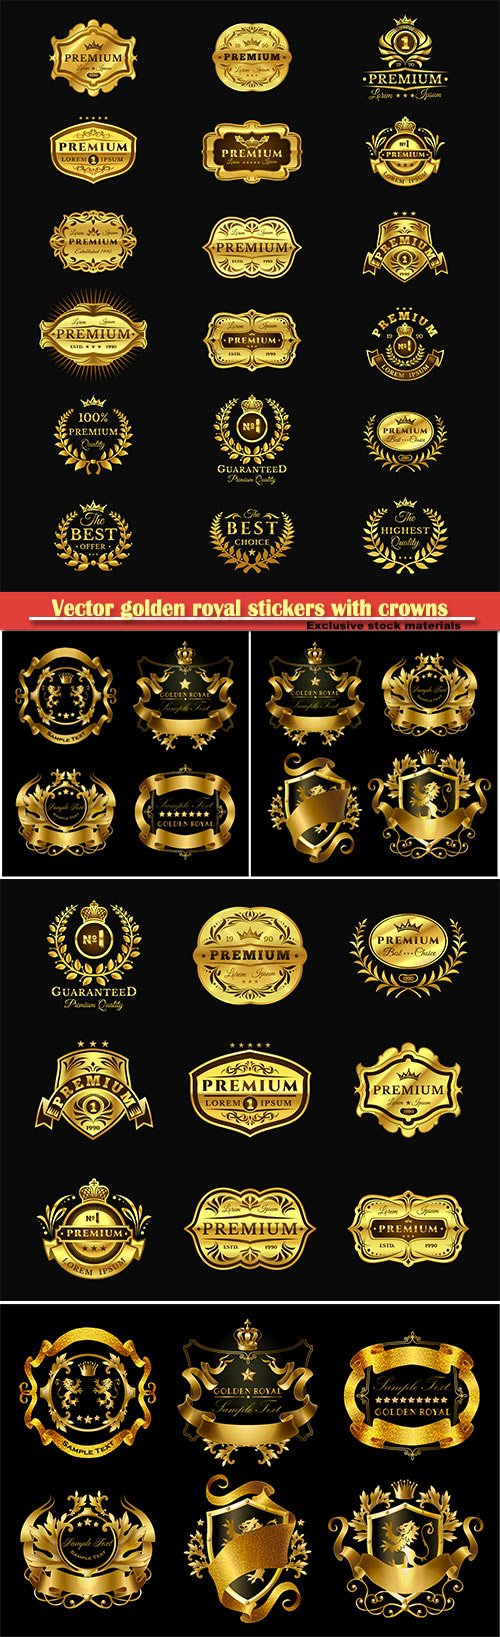 Vector golden royal stickers with crowns, elegant monogram and labels